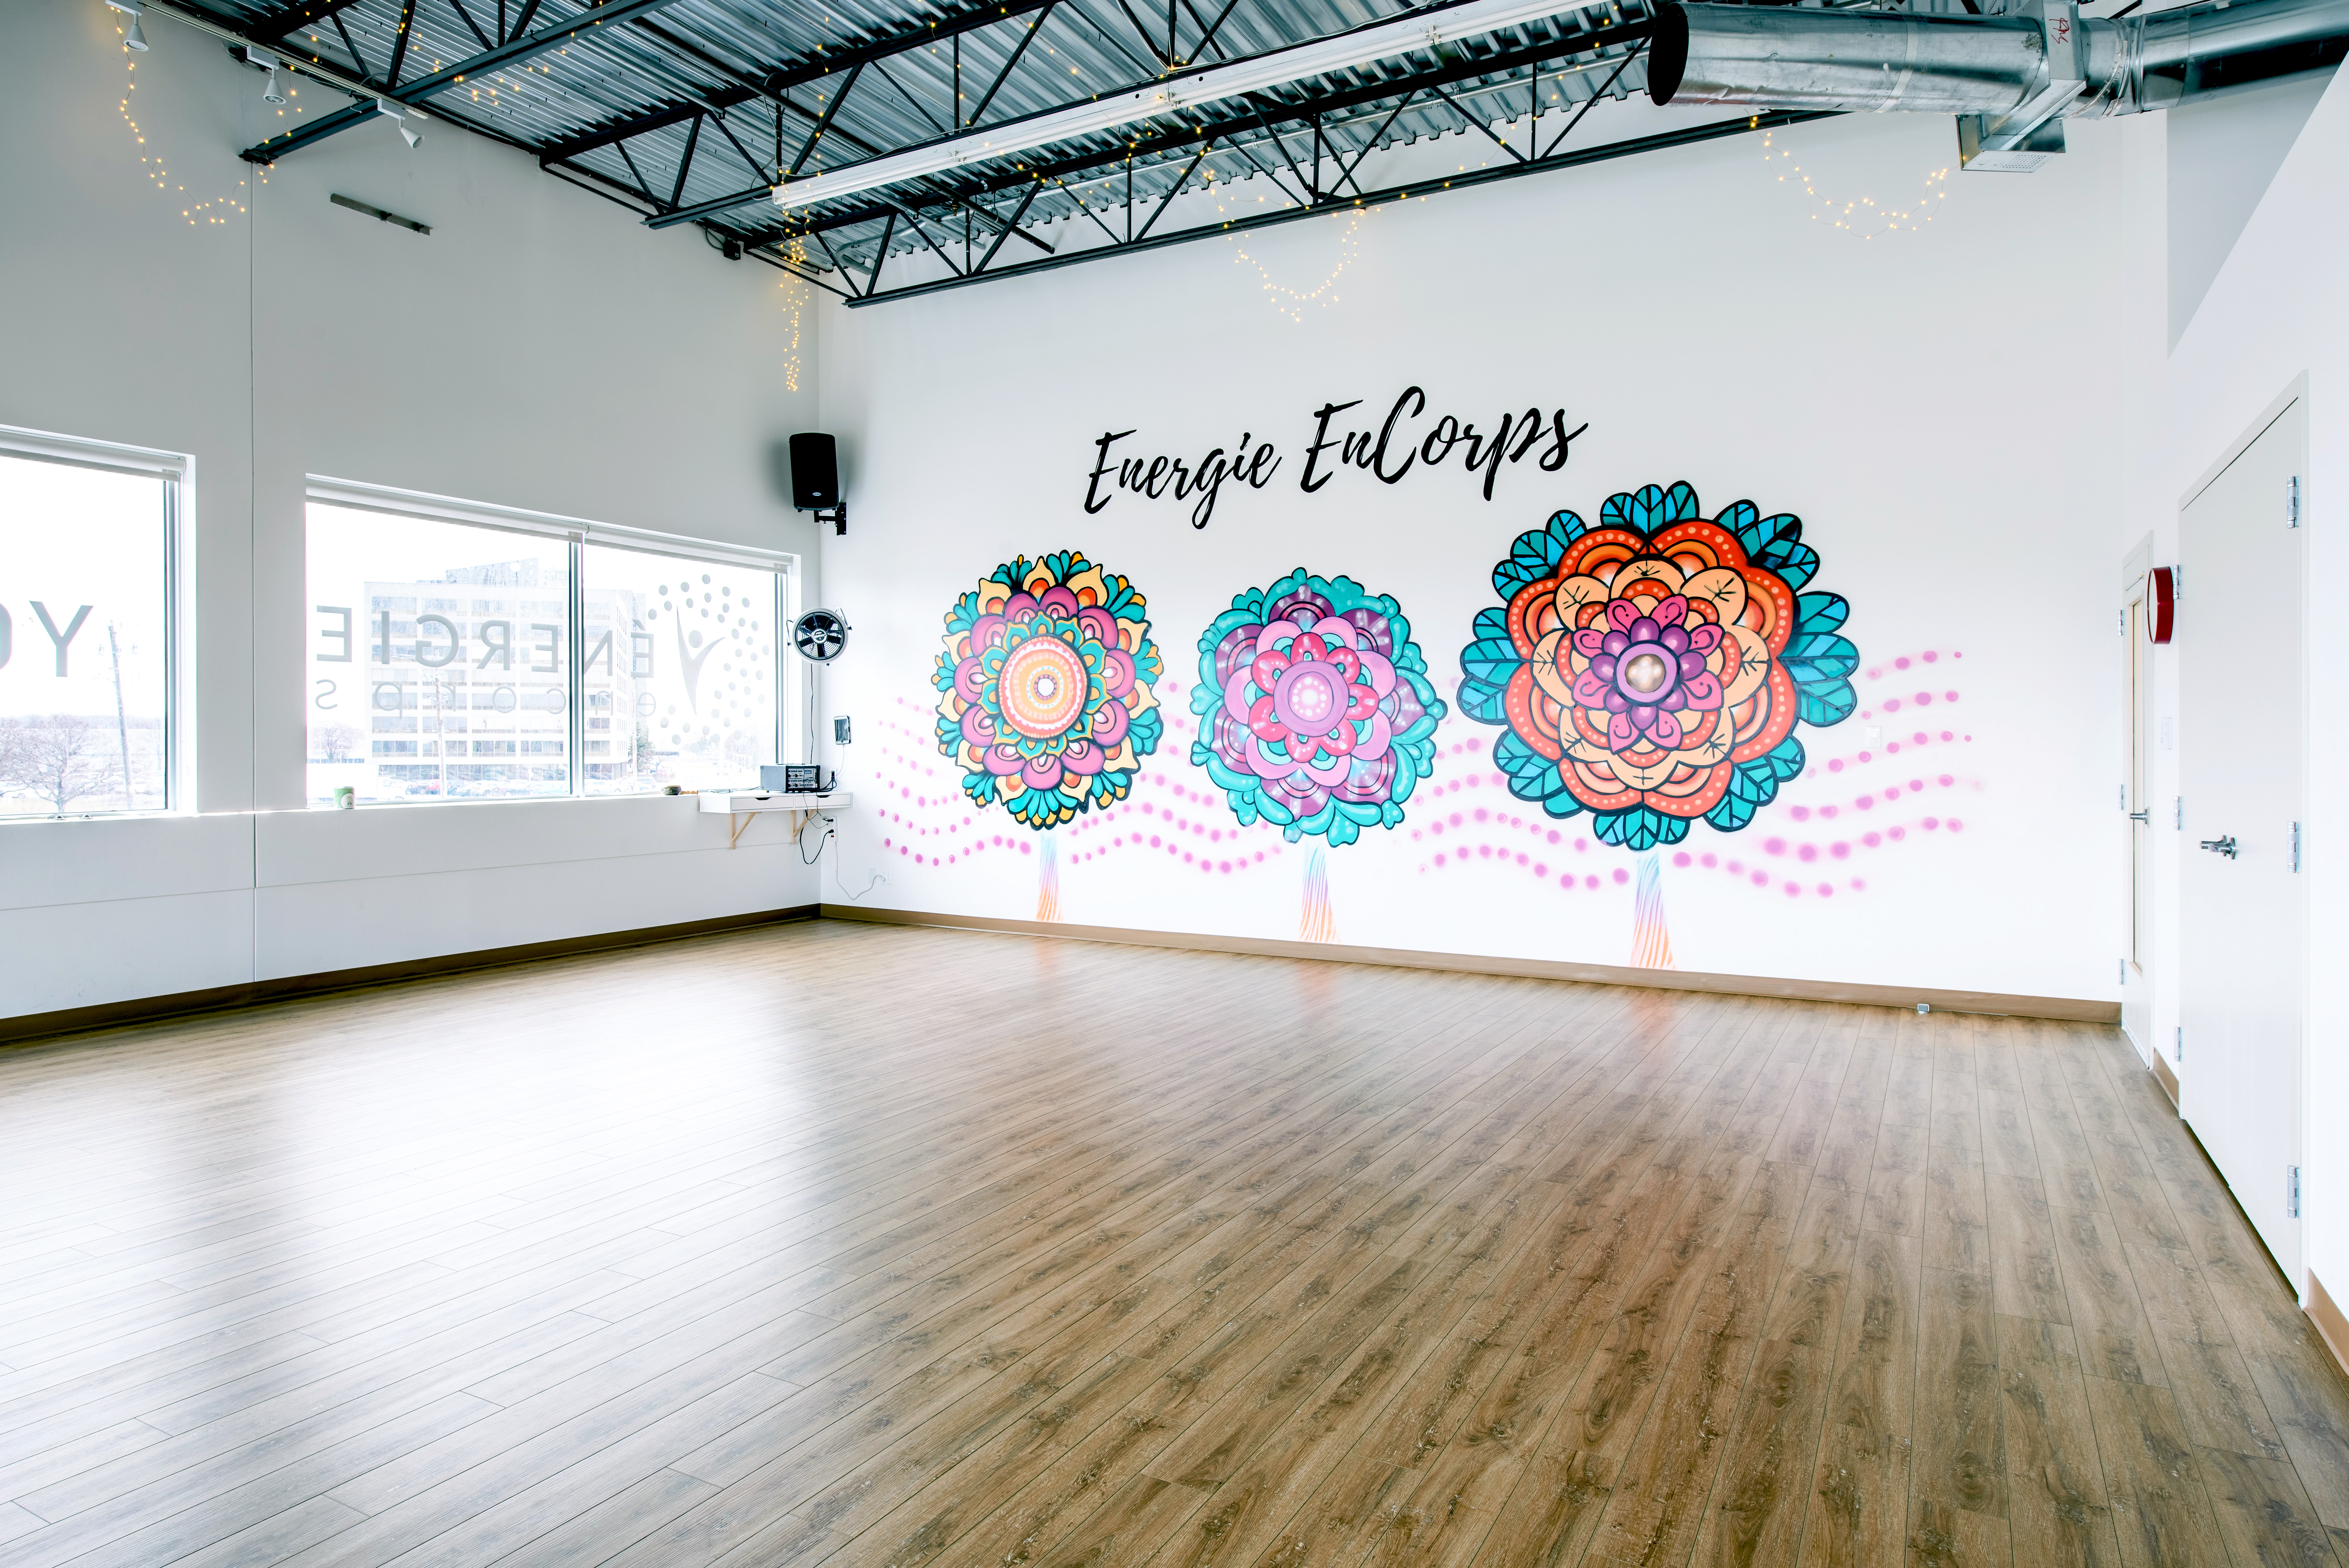 energie encorps fitness studio